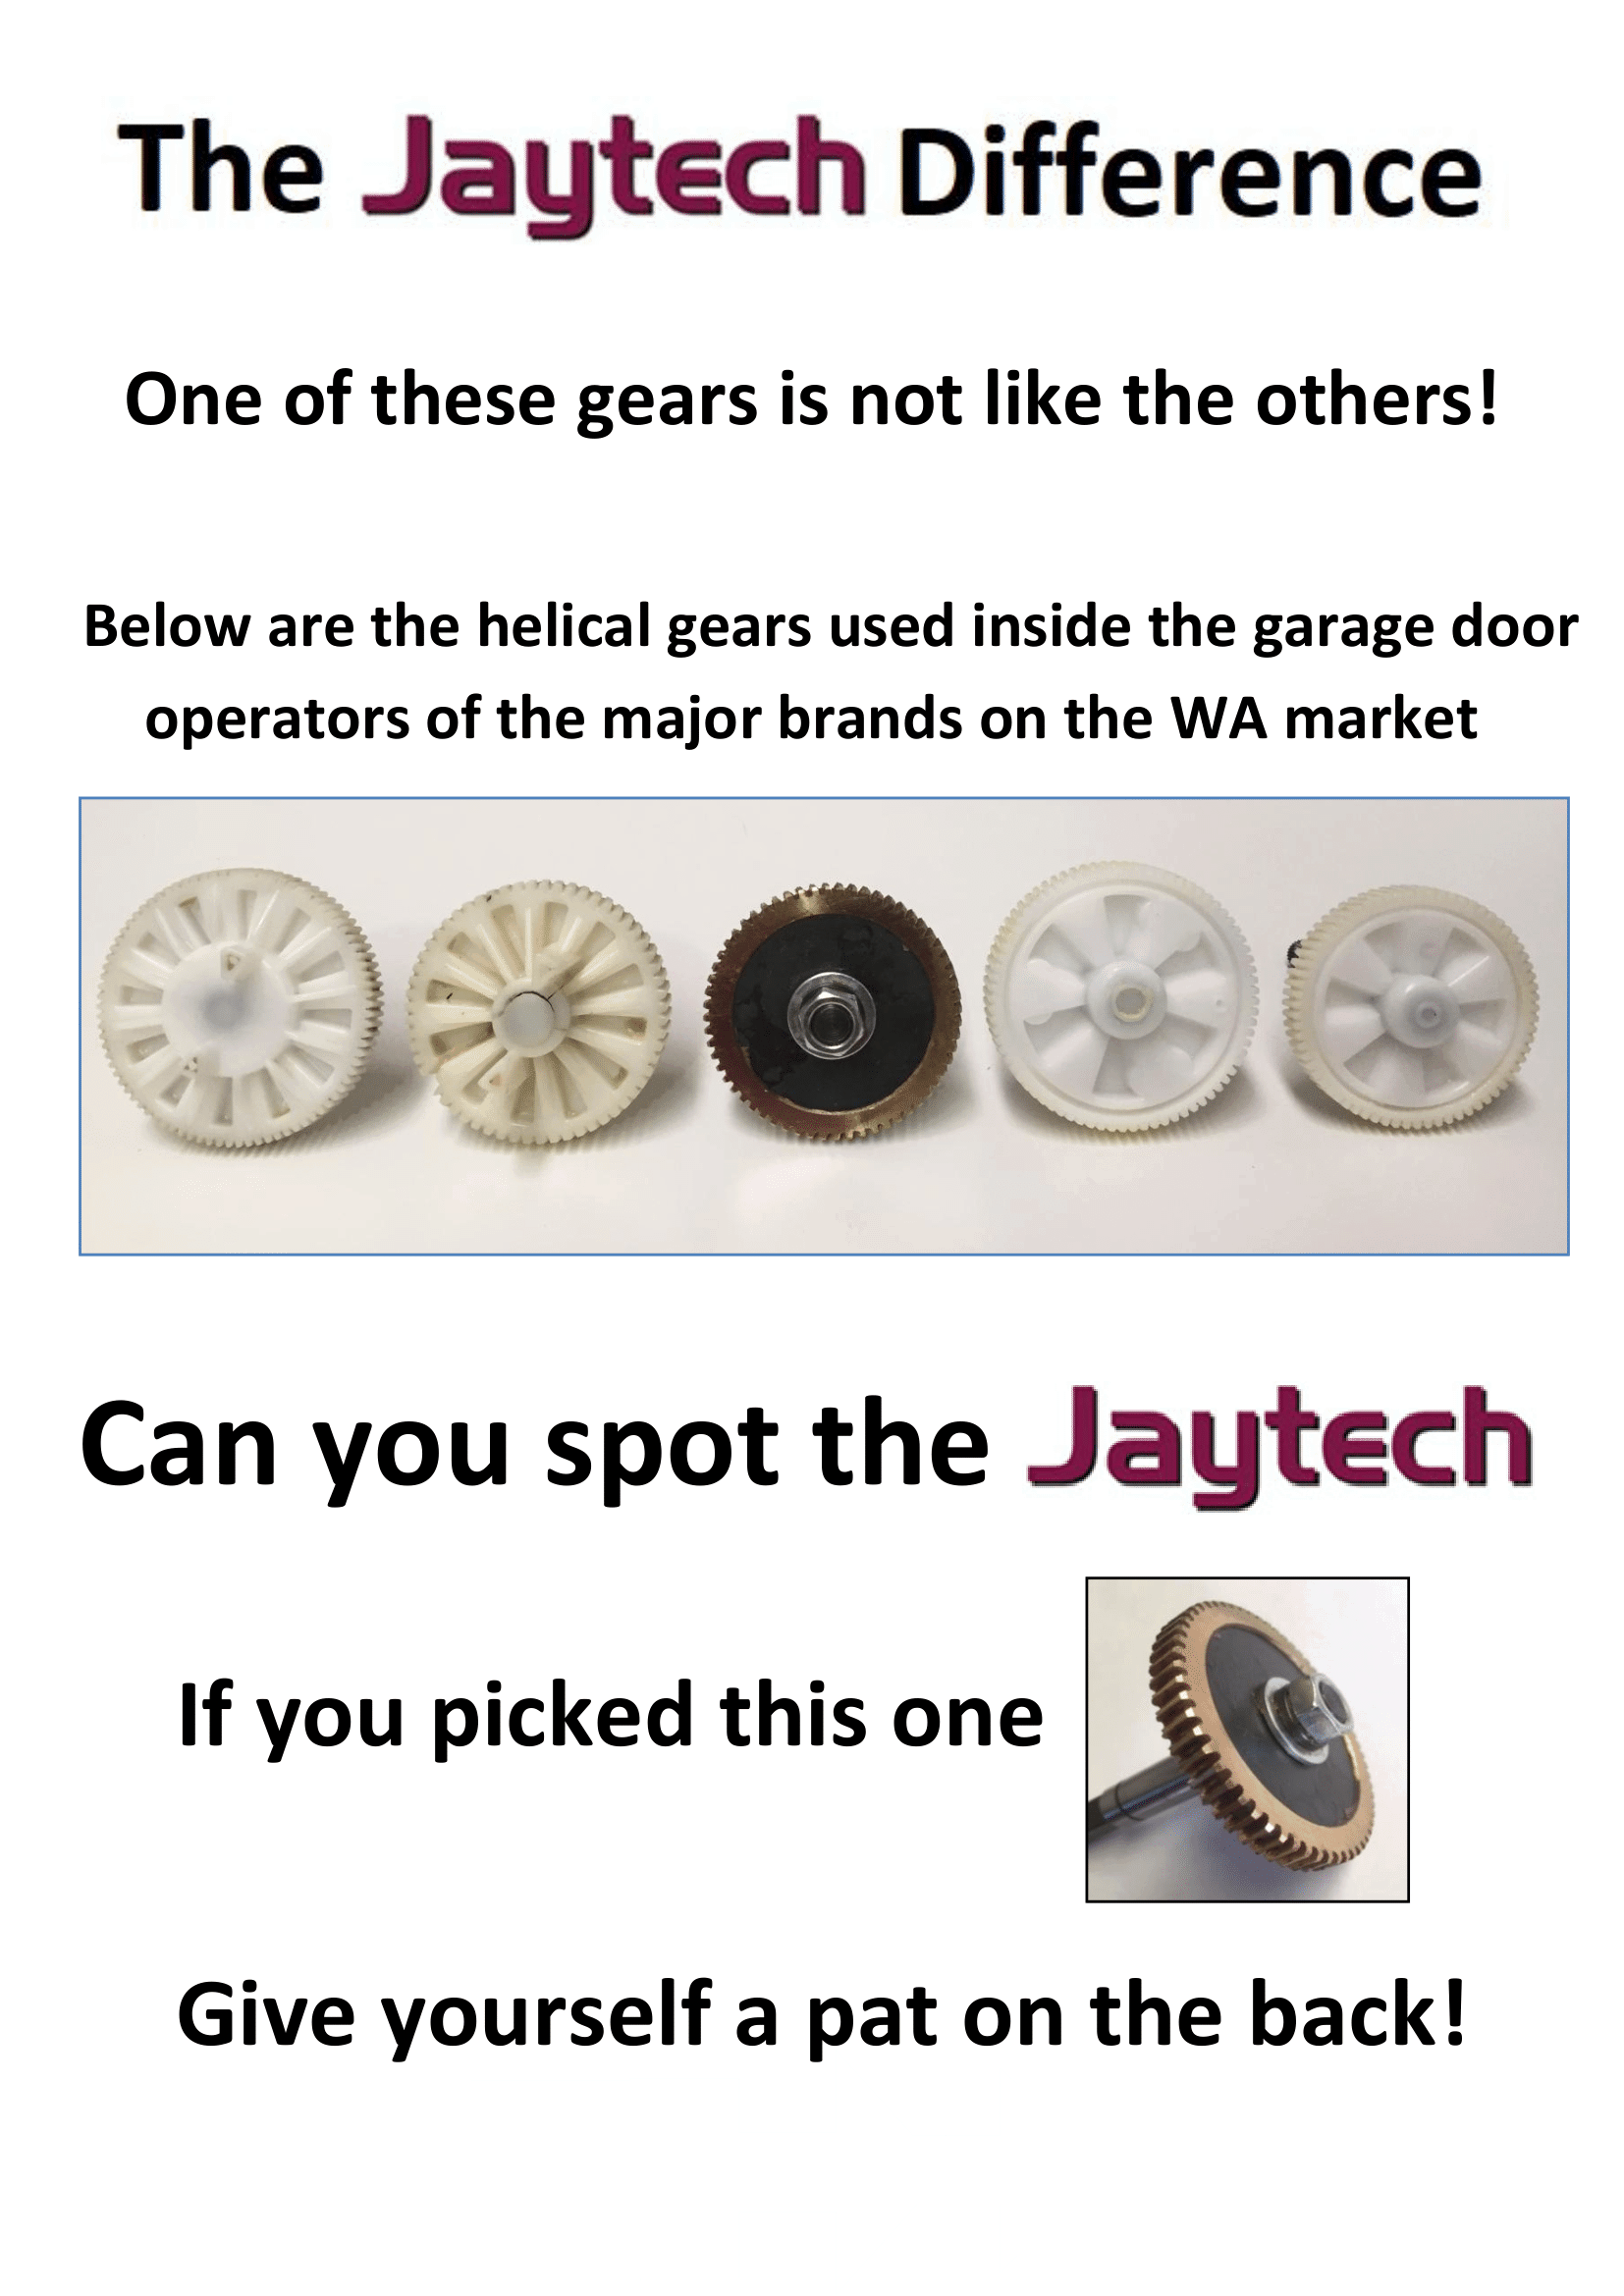 Jaytech garage door opener gear comparison